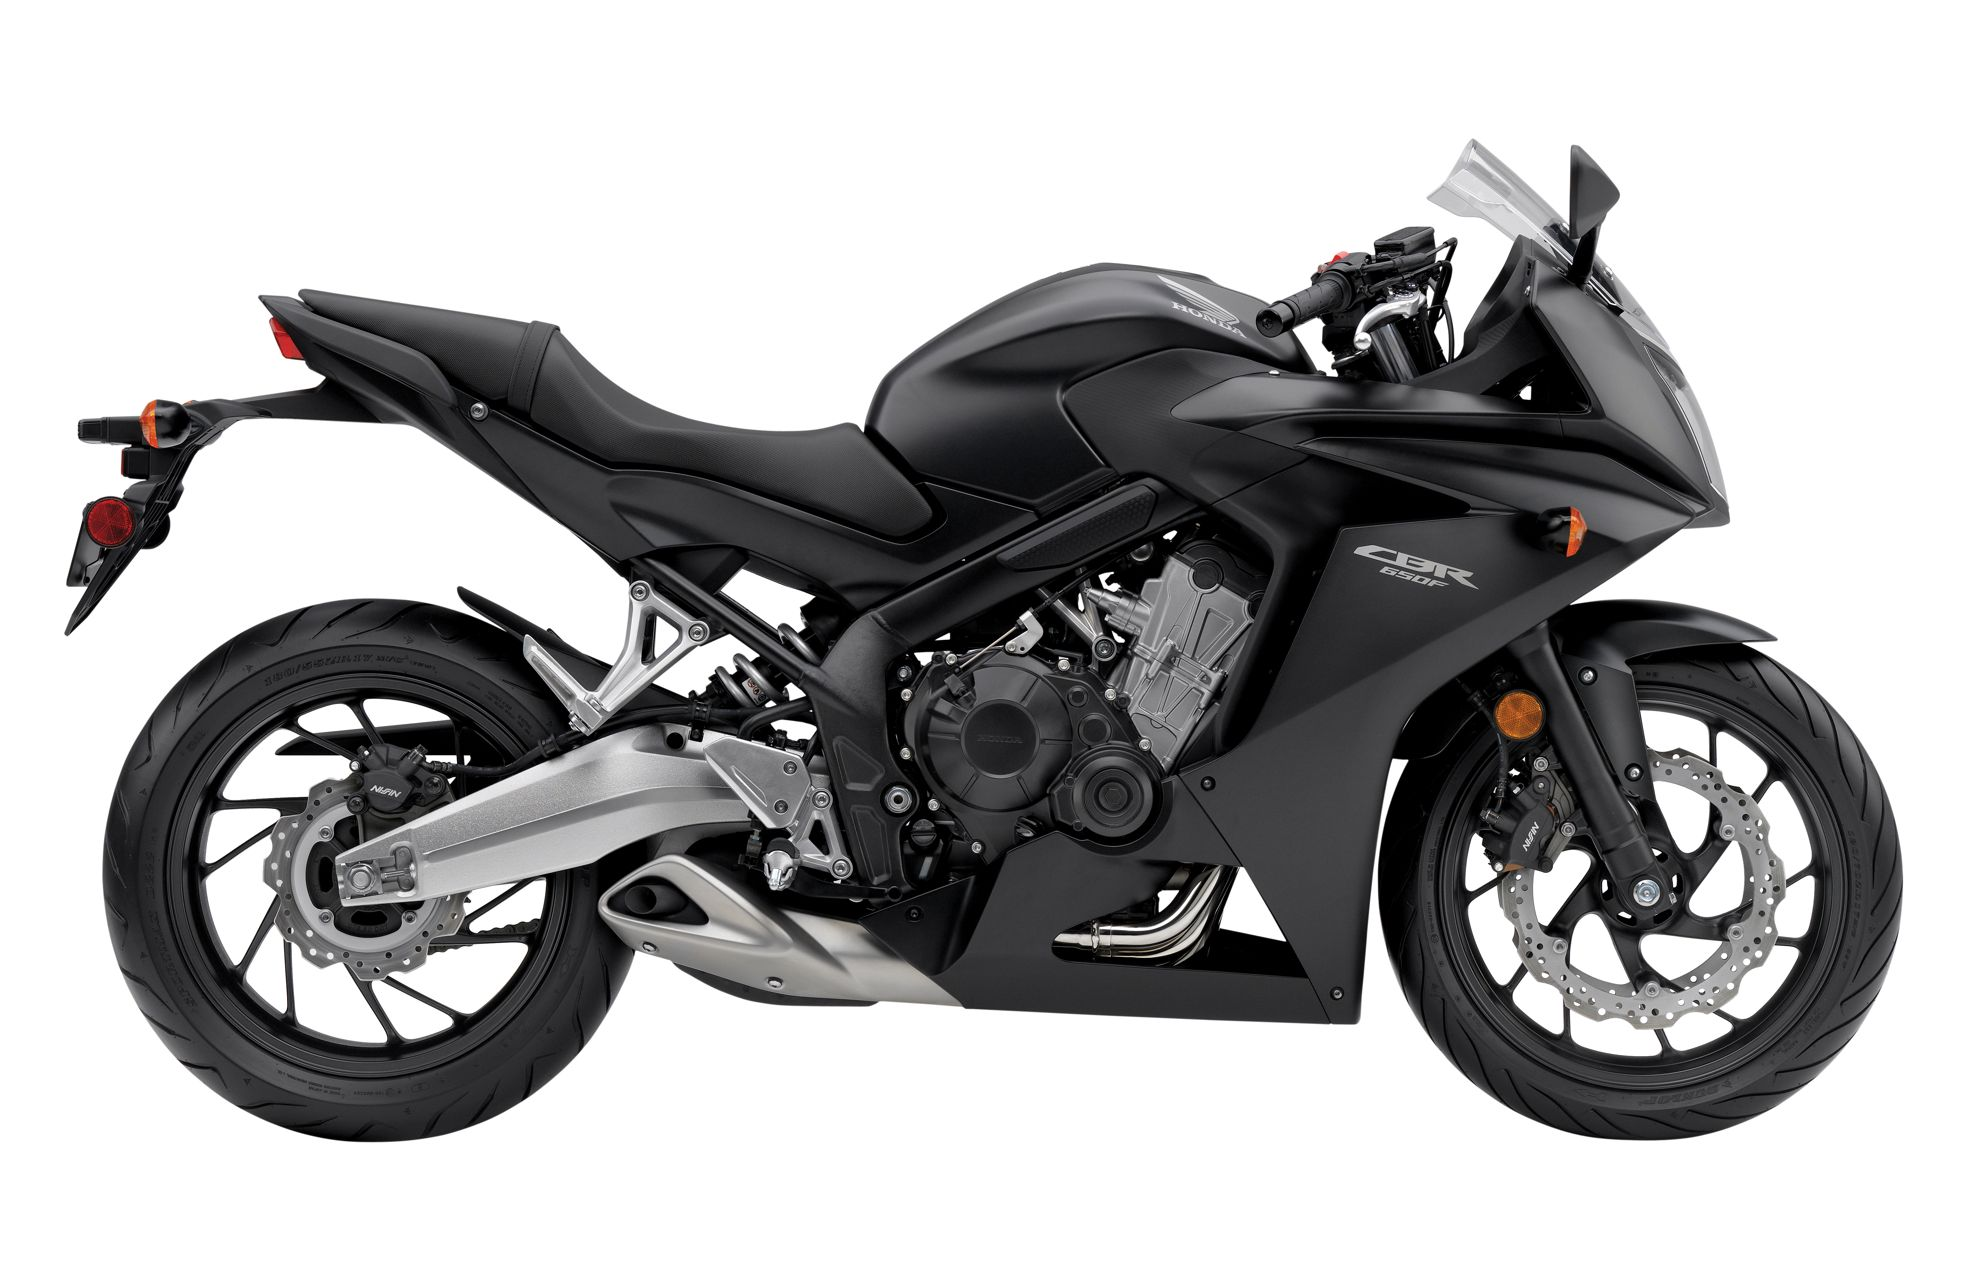 2014 honda cbr650f features and benefits. Black Bedroom Furniture Sets. Home Design Ideas